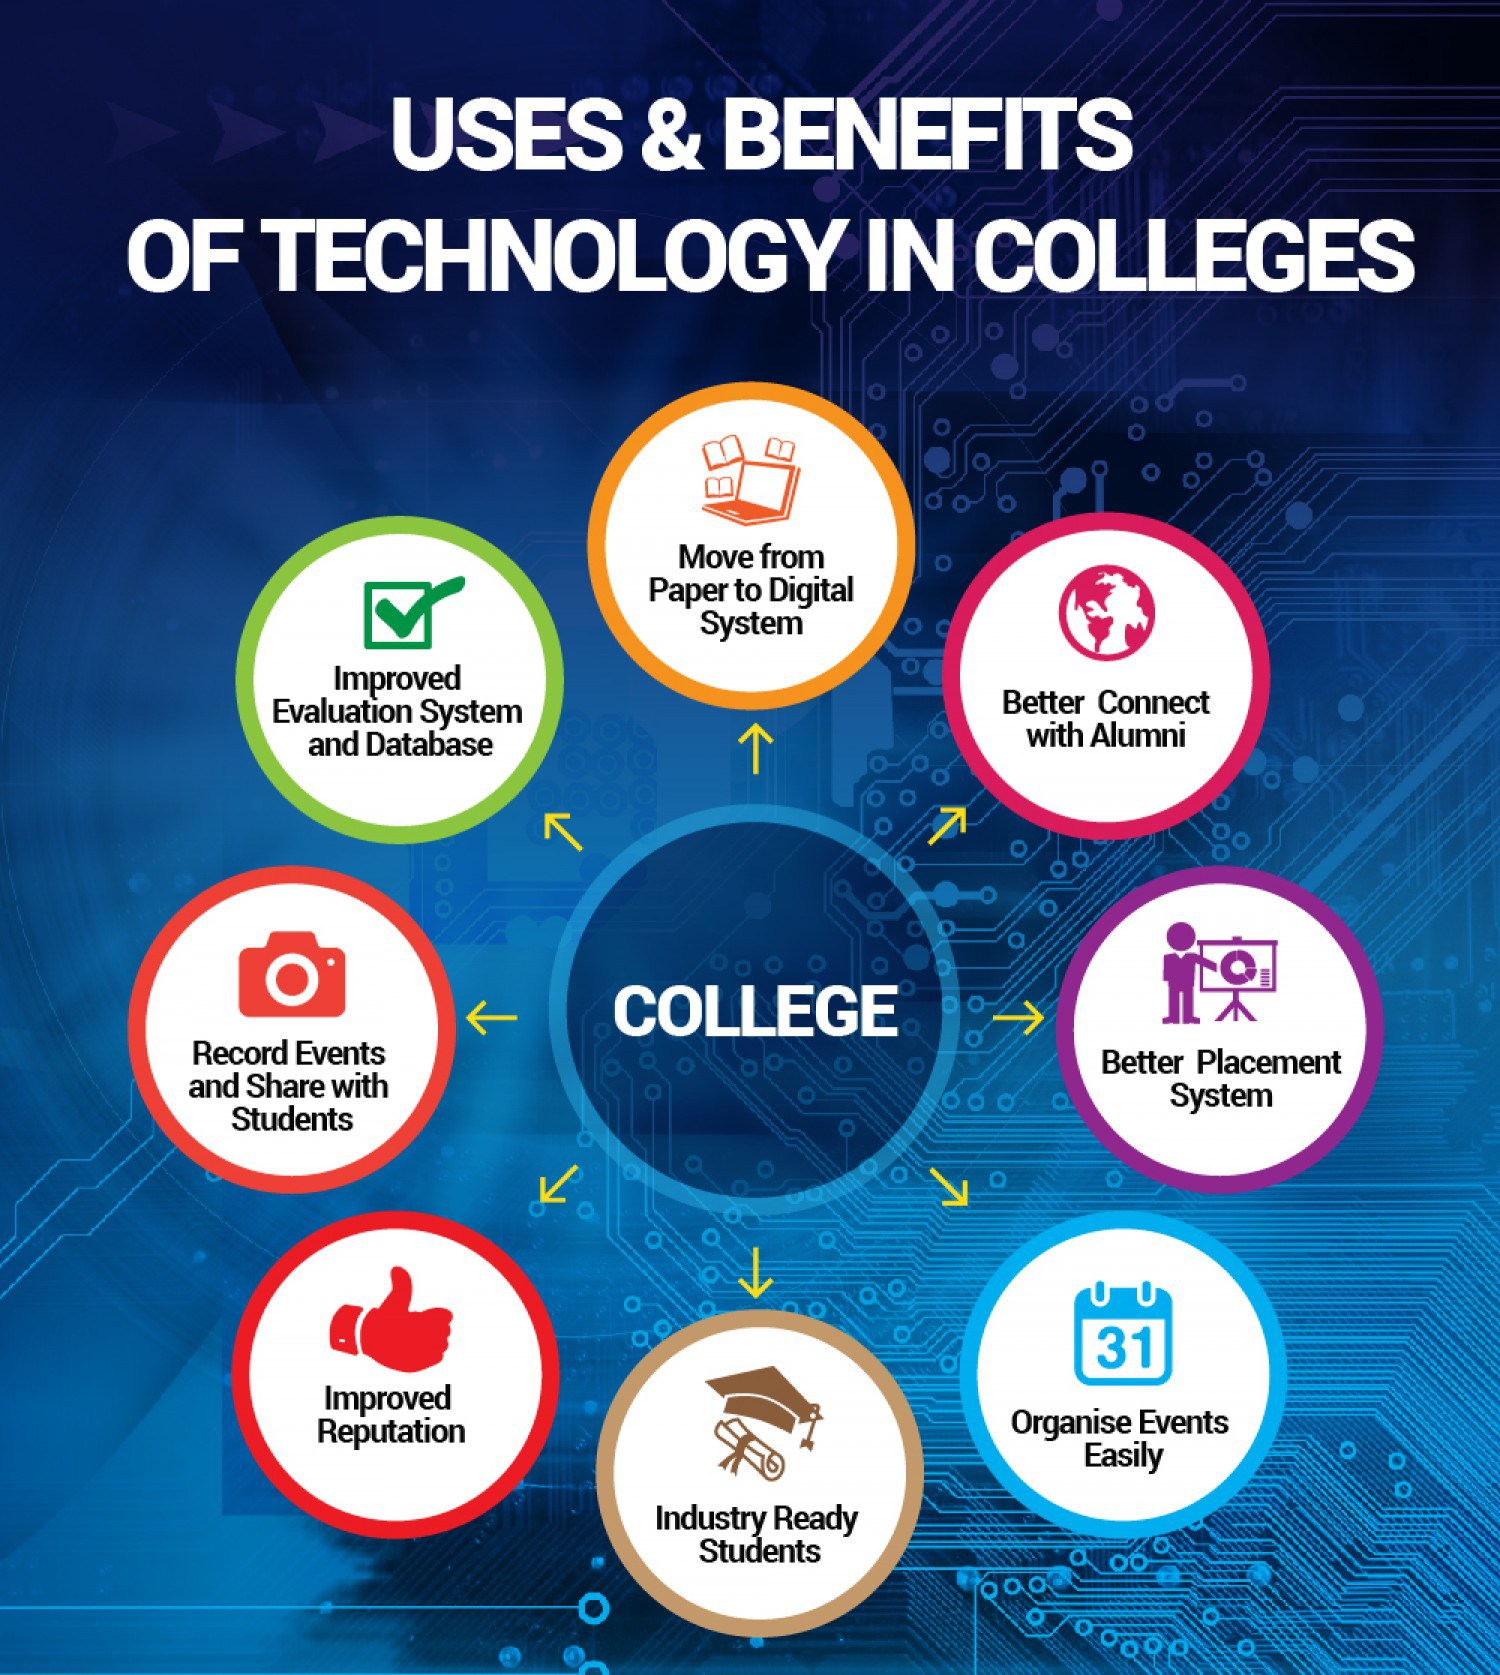 10 advantages of technology What is information technology, what are the importance of information technology, advantages and disadvantages of information technology - we are living in the information age and are constantly inundated from every area within our lives with information technology, advantages of it, disadvantages of information technology.